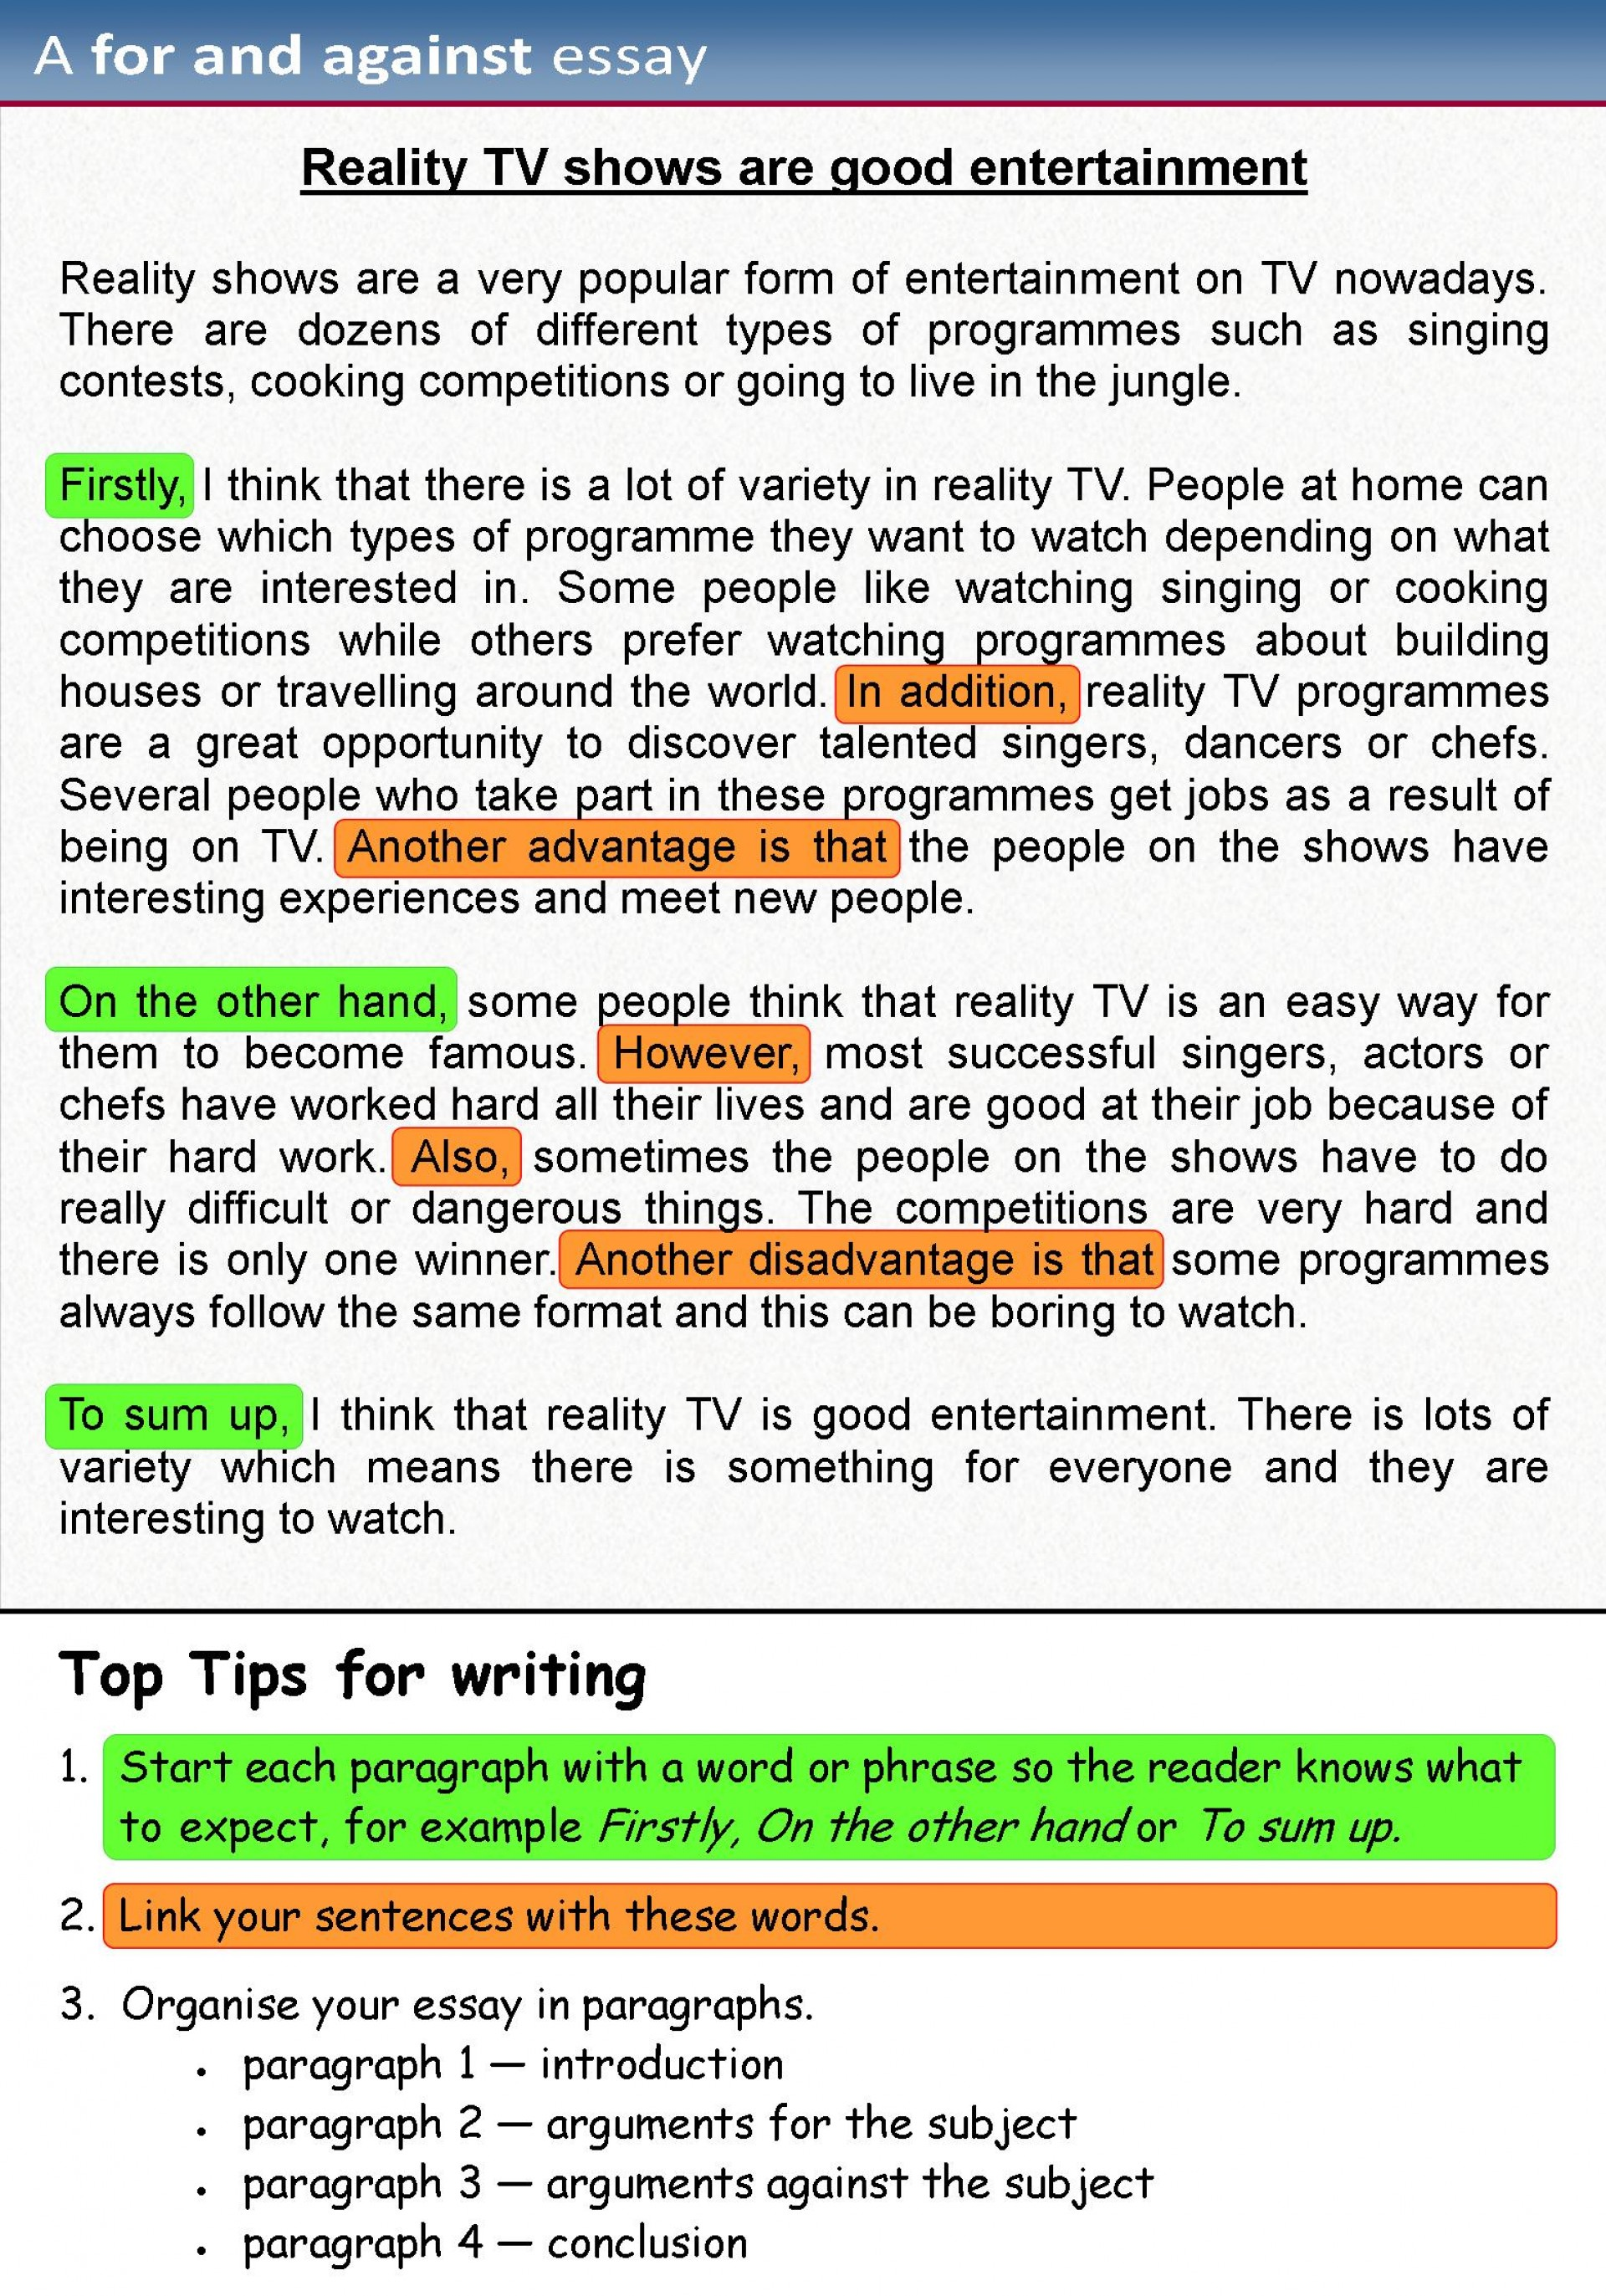 024 Tips To Write Good Essay Example For Against 1 Marvelous A Narrative Persuasive In Exam 1920